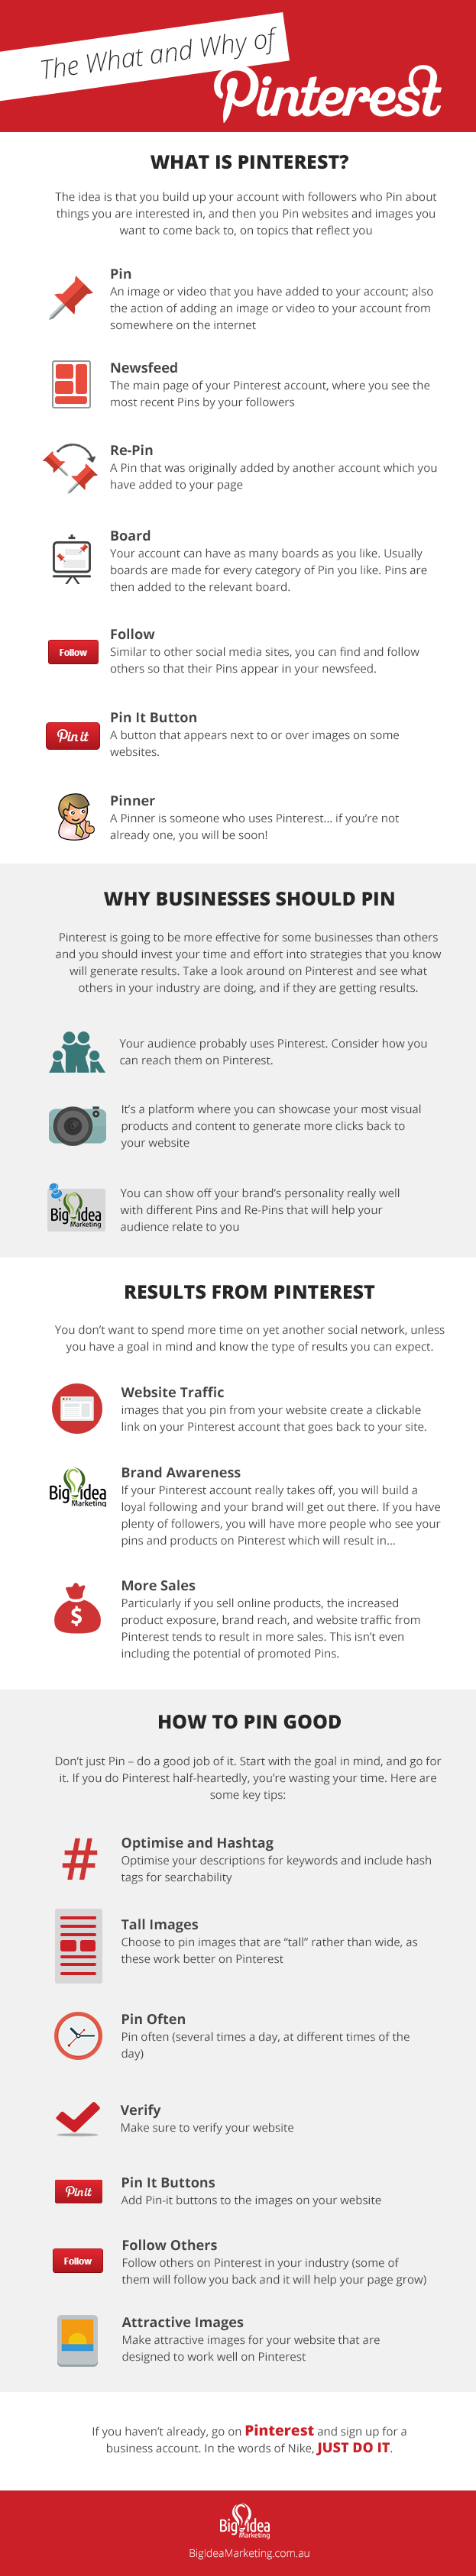 The What and Why of Pinterest for Business - #infographic